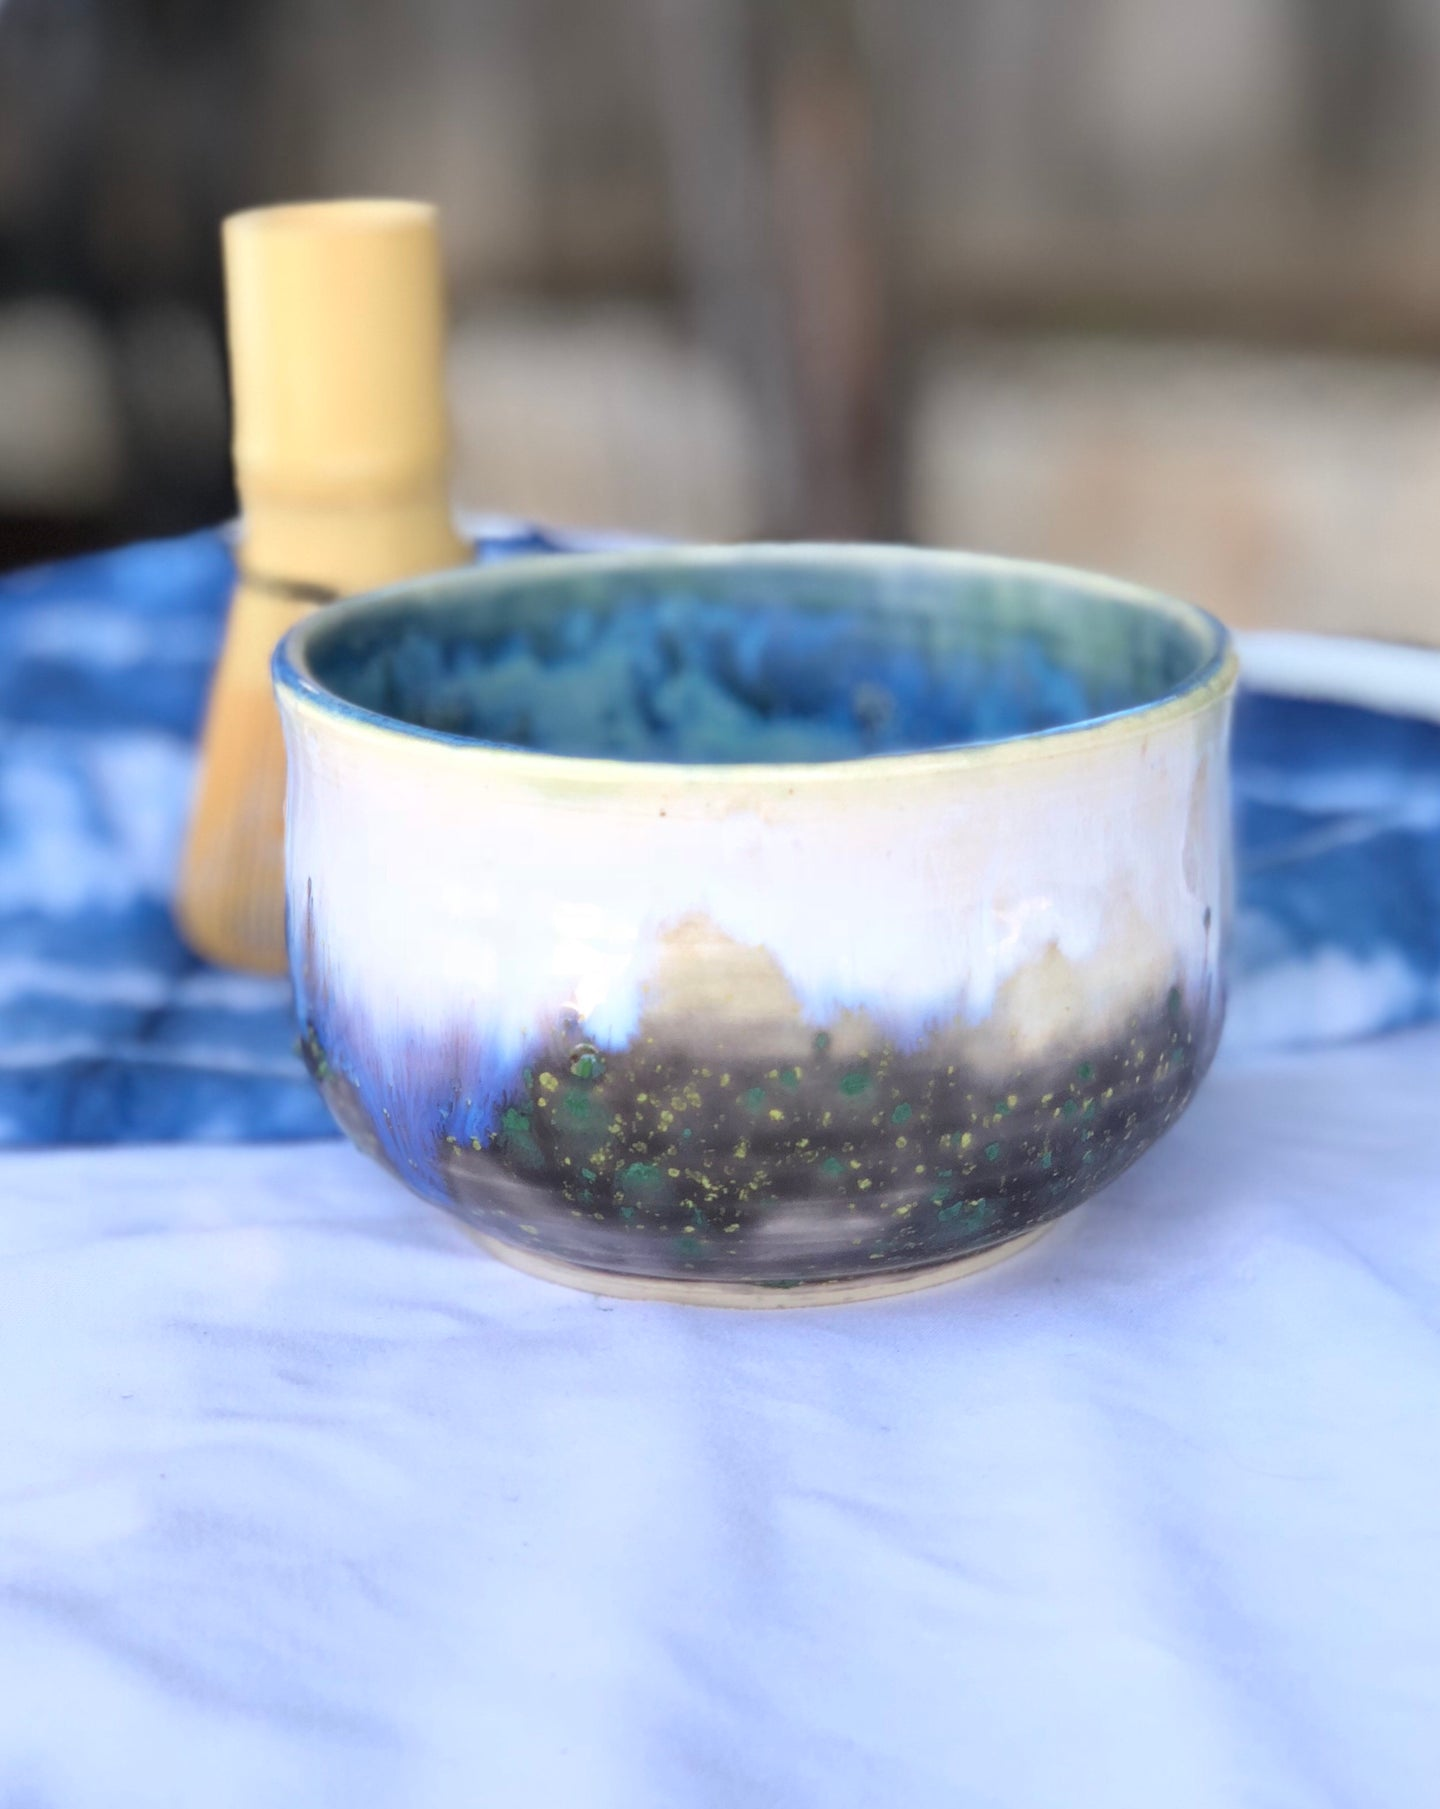 Cloudy Forest - Chawan Matcha Tea bowl  & Indigo Shibori Tea towel set 12 oz - Hsiaowan Studios Handmade Ceramics Pottery